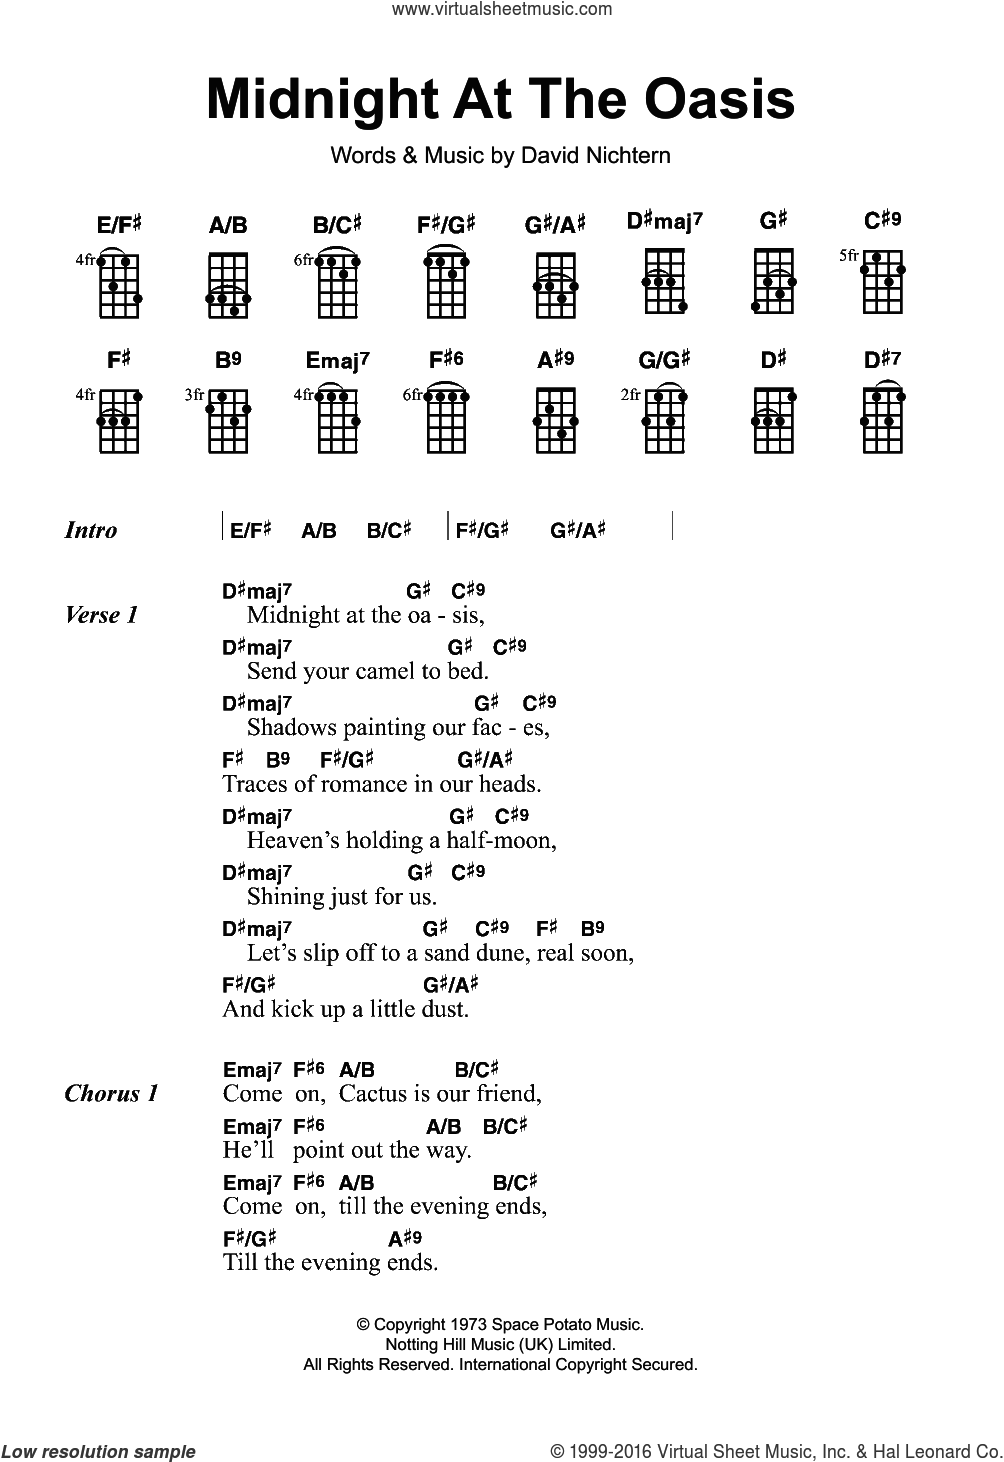 Midnight At The Oasis sheet music for ukulele by Maria Muldaur, The Brand New Heavies and David Nichtern, intermediate skill level